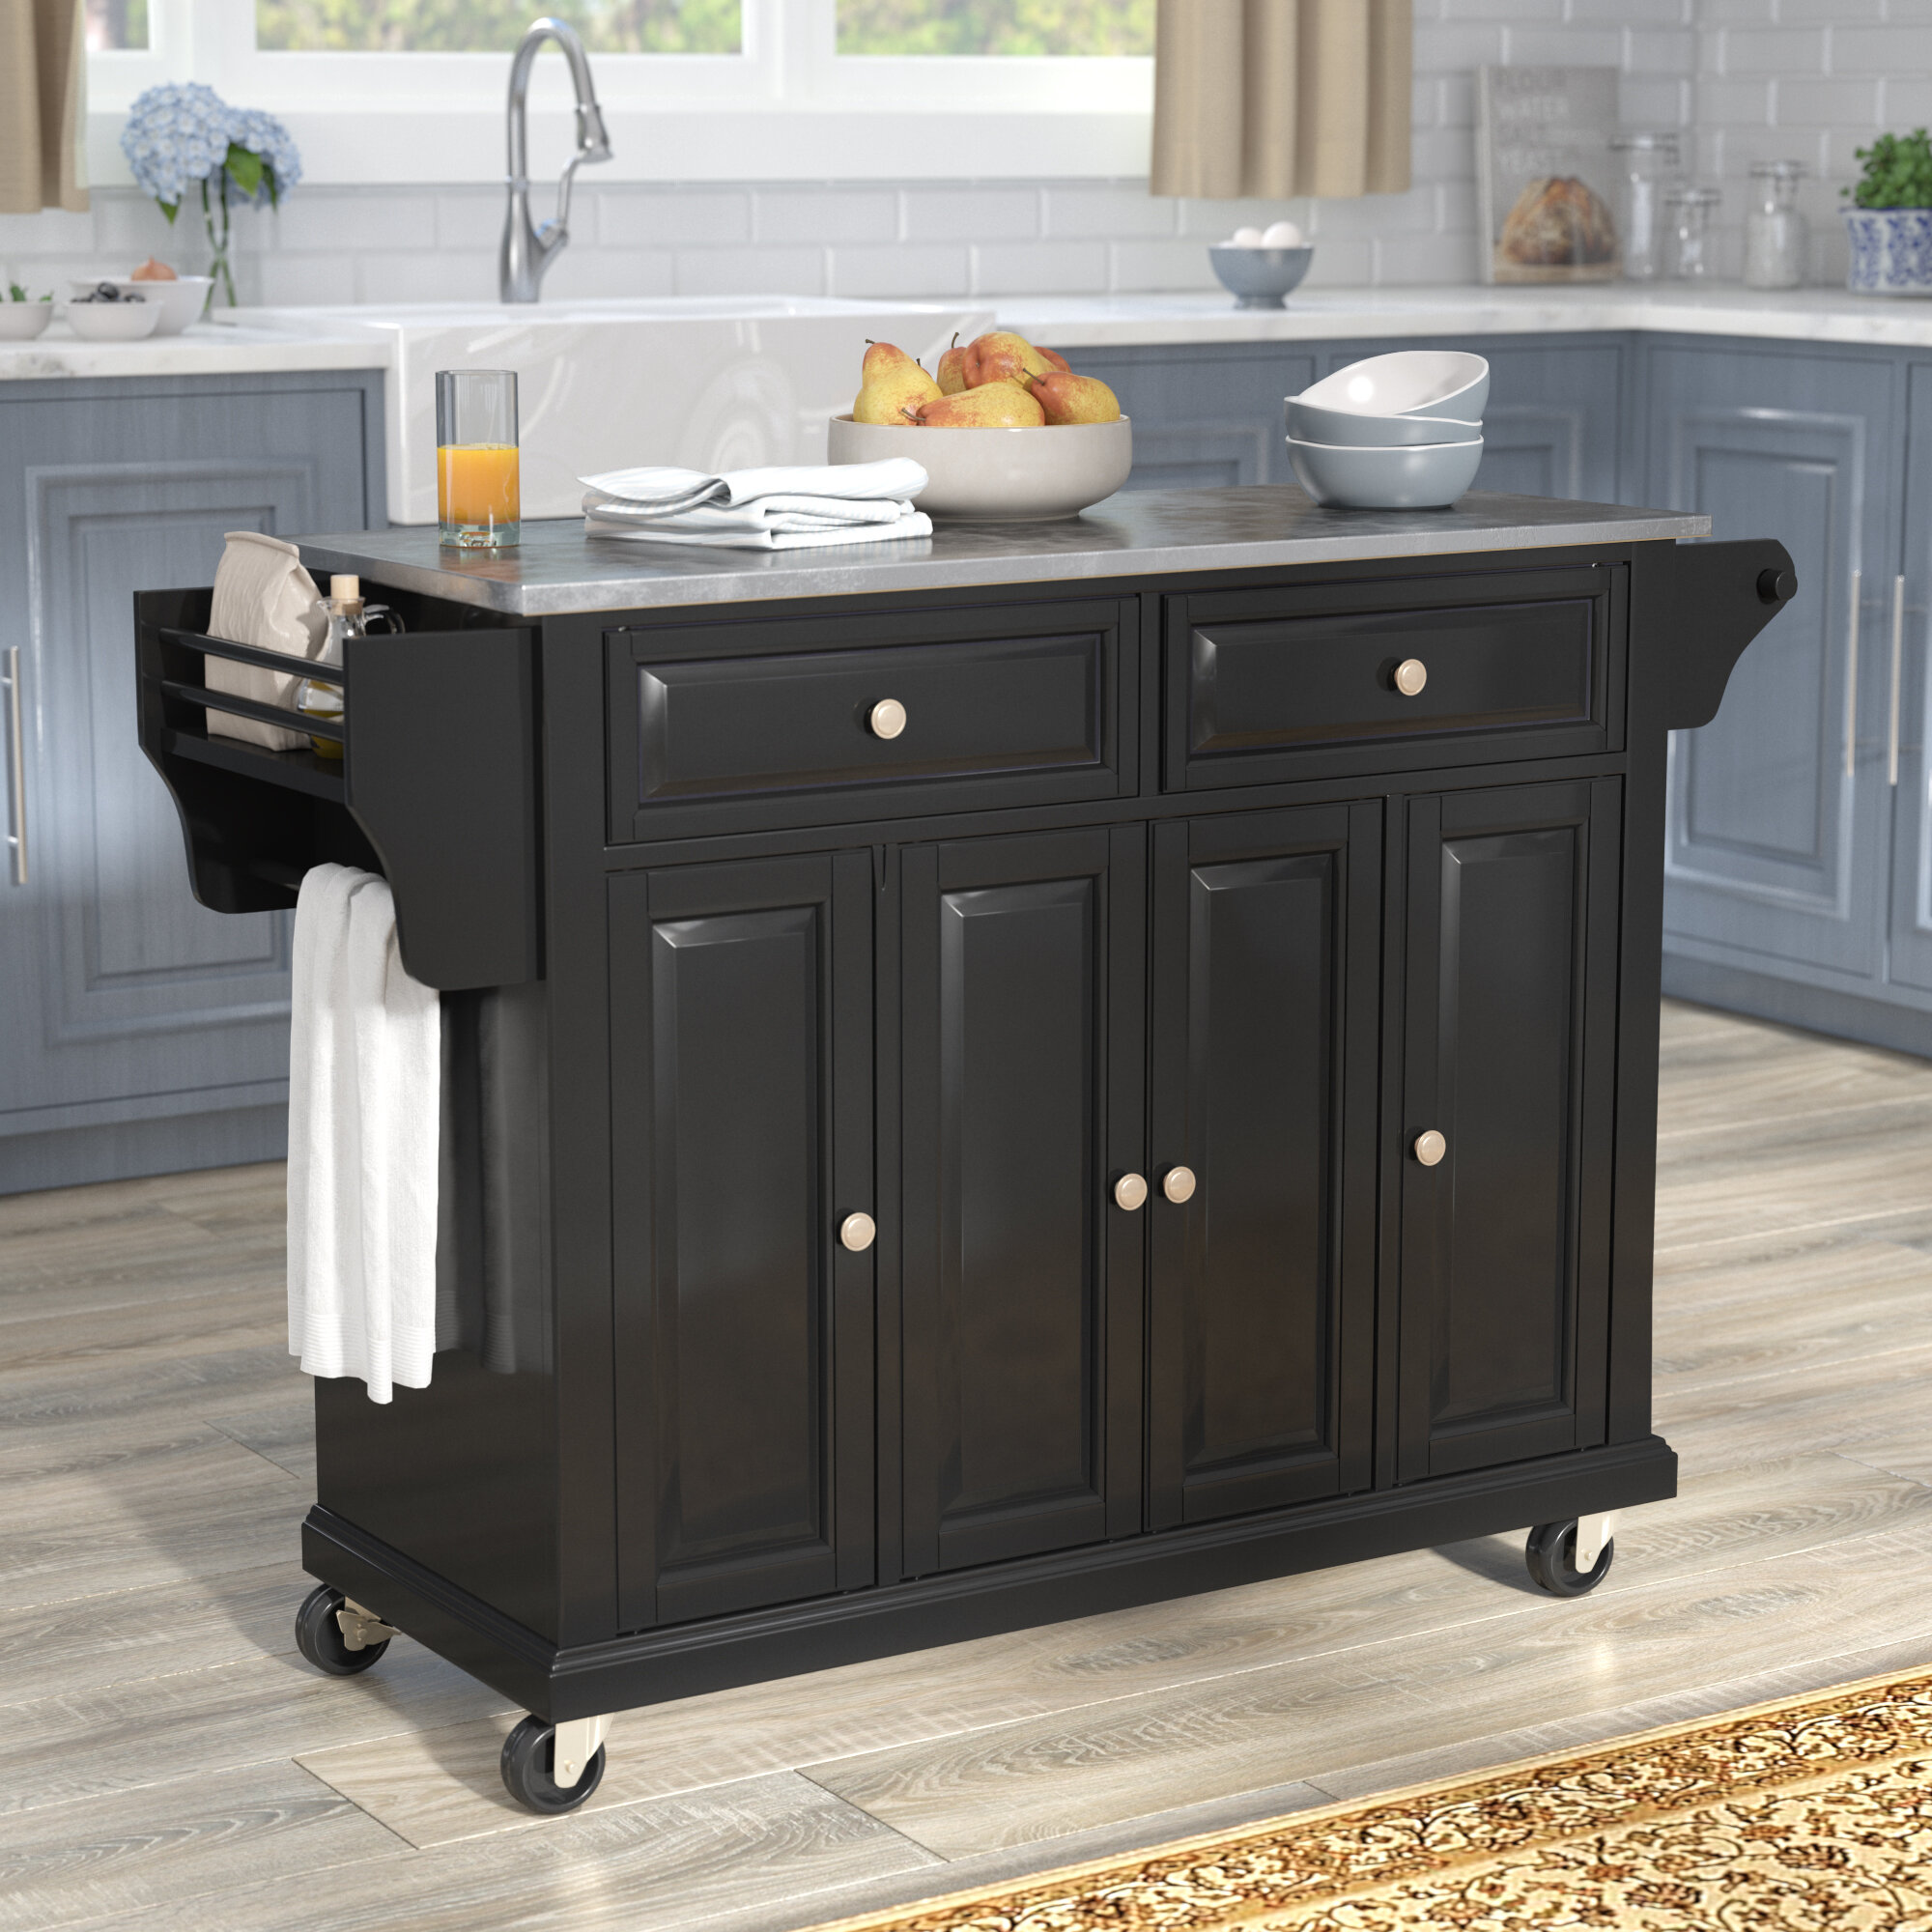 Hedon Kitchen Island With Stainless Steel Top